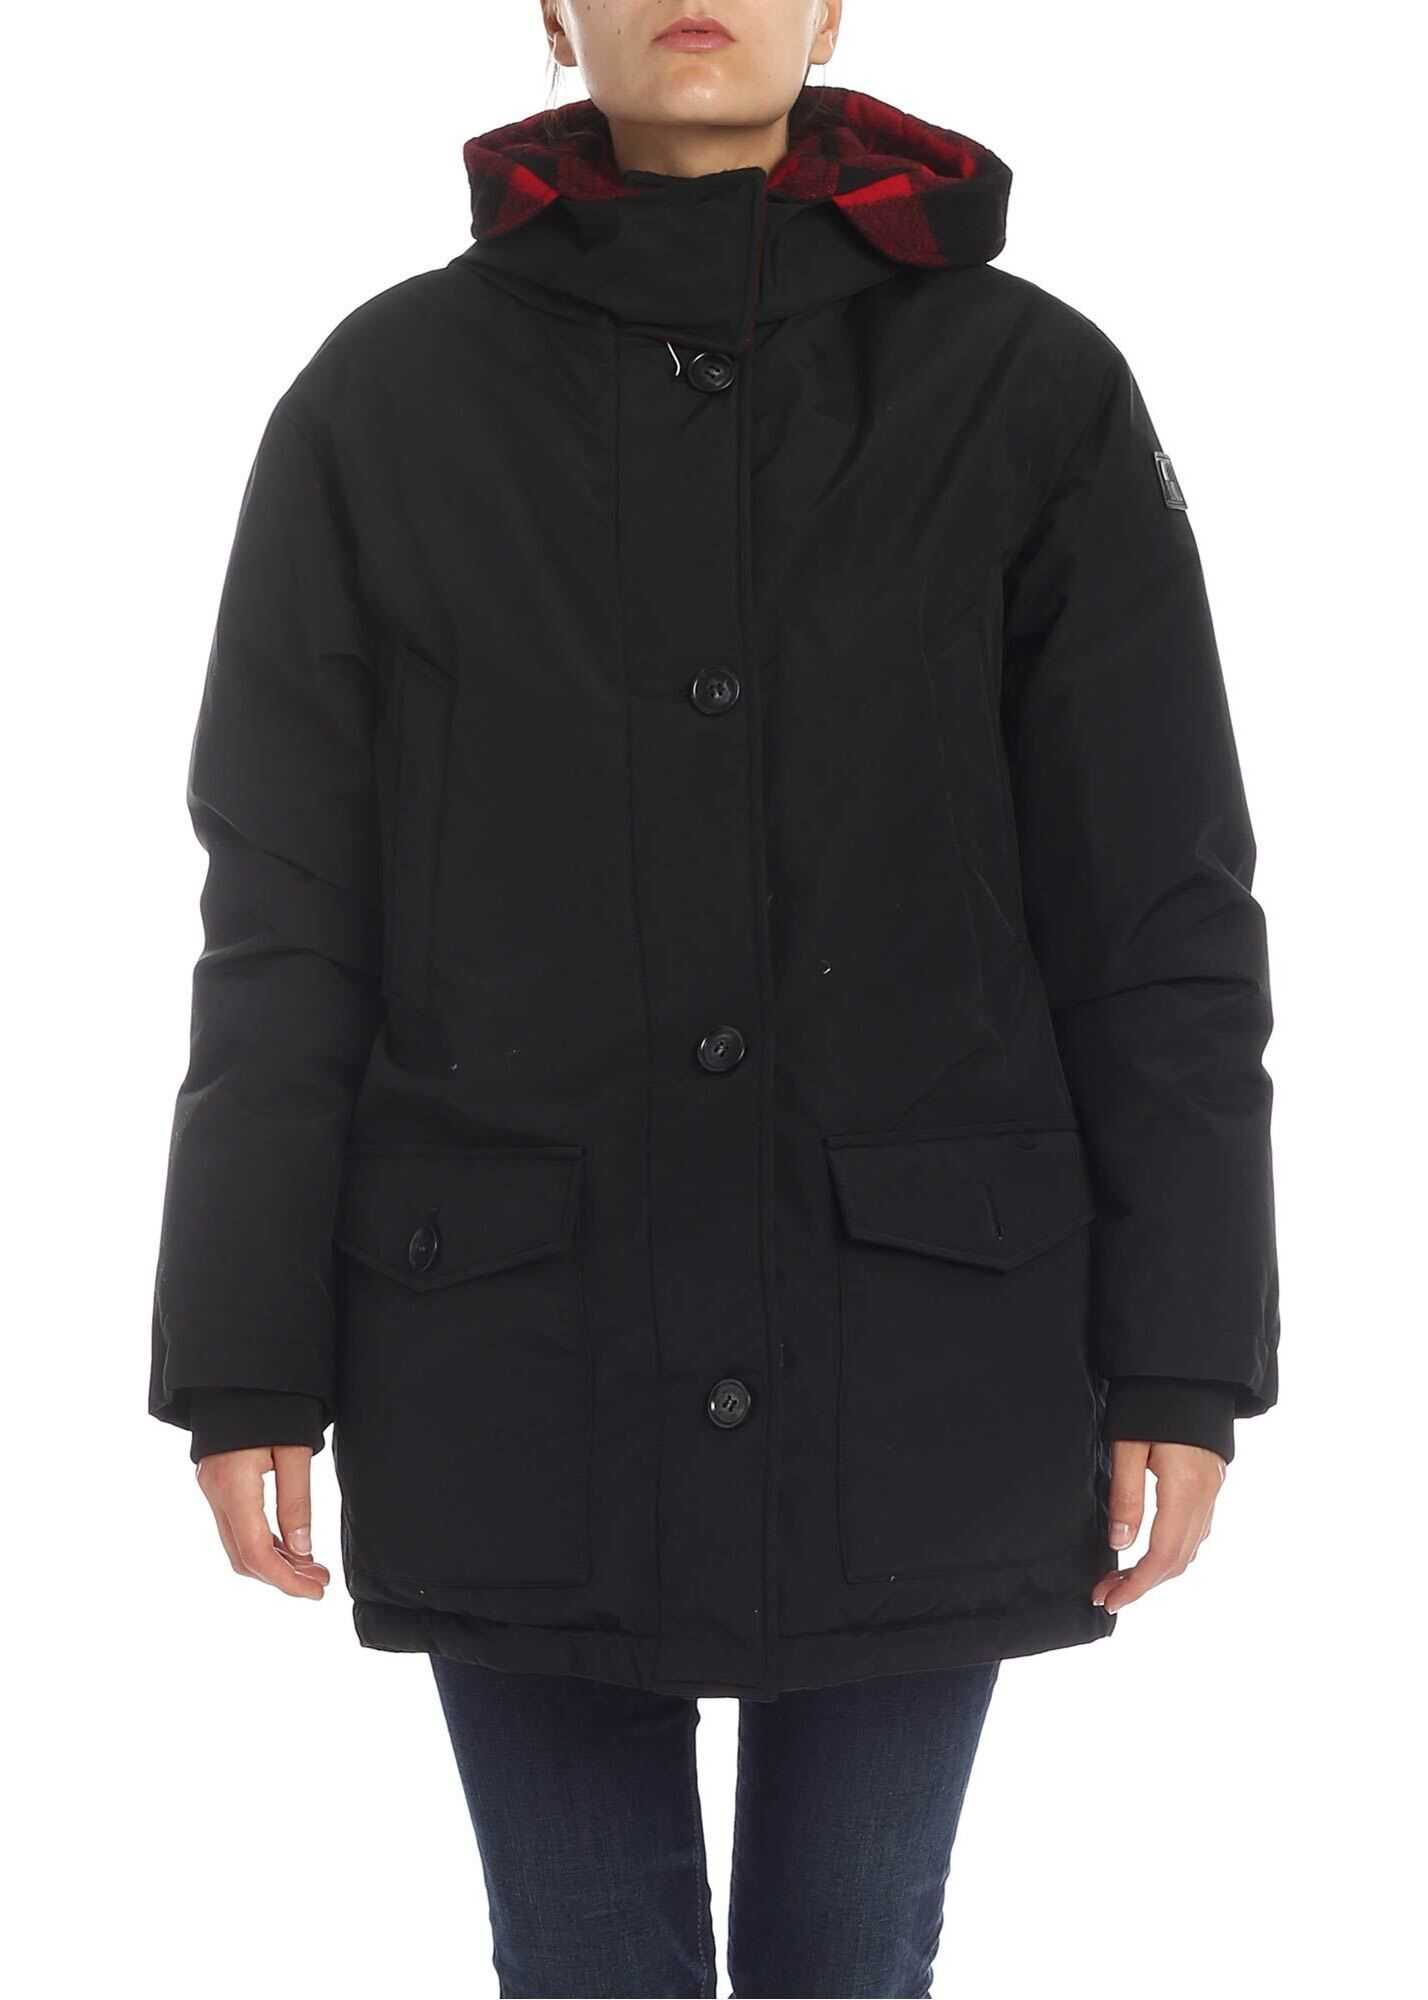 Woolrich Reversible Down Jacket With Hood In Black Black